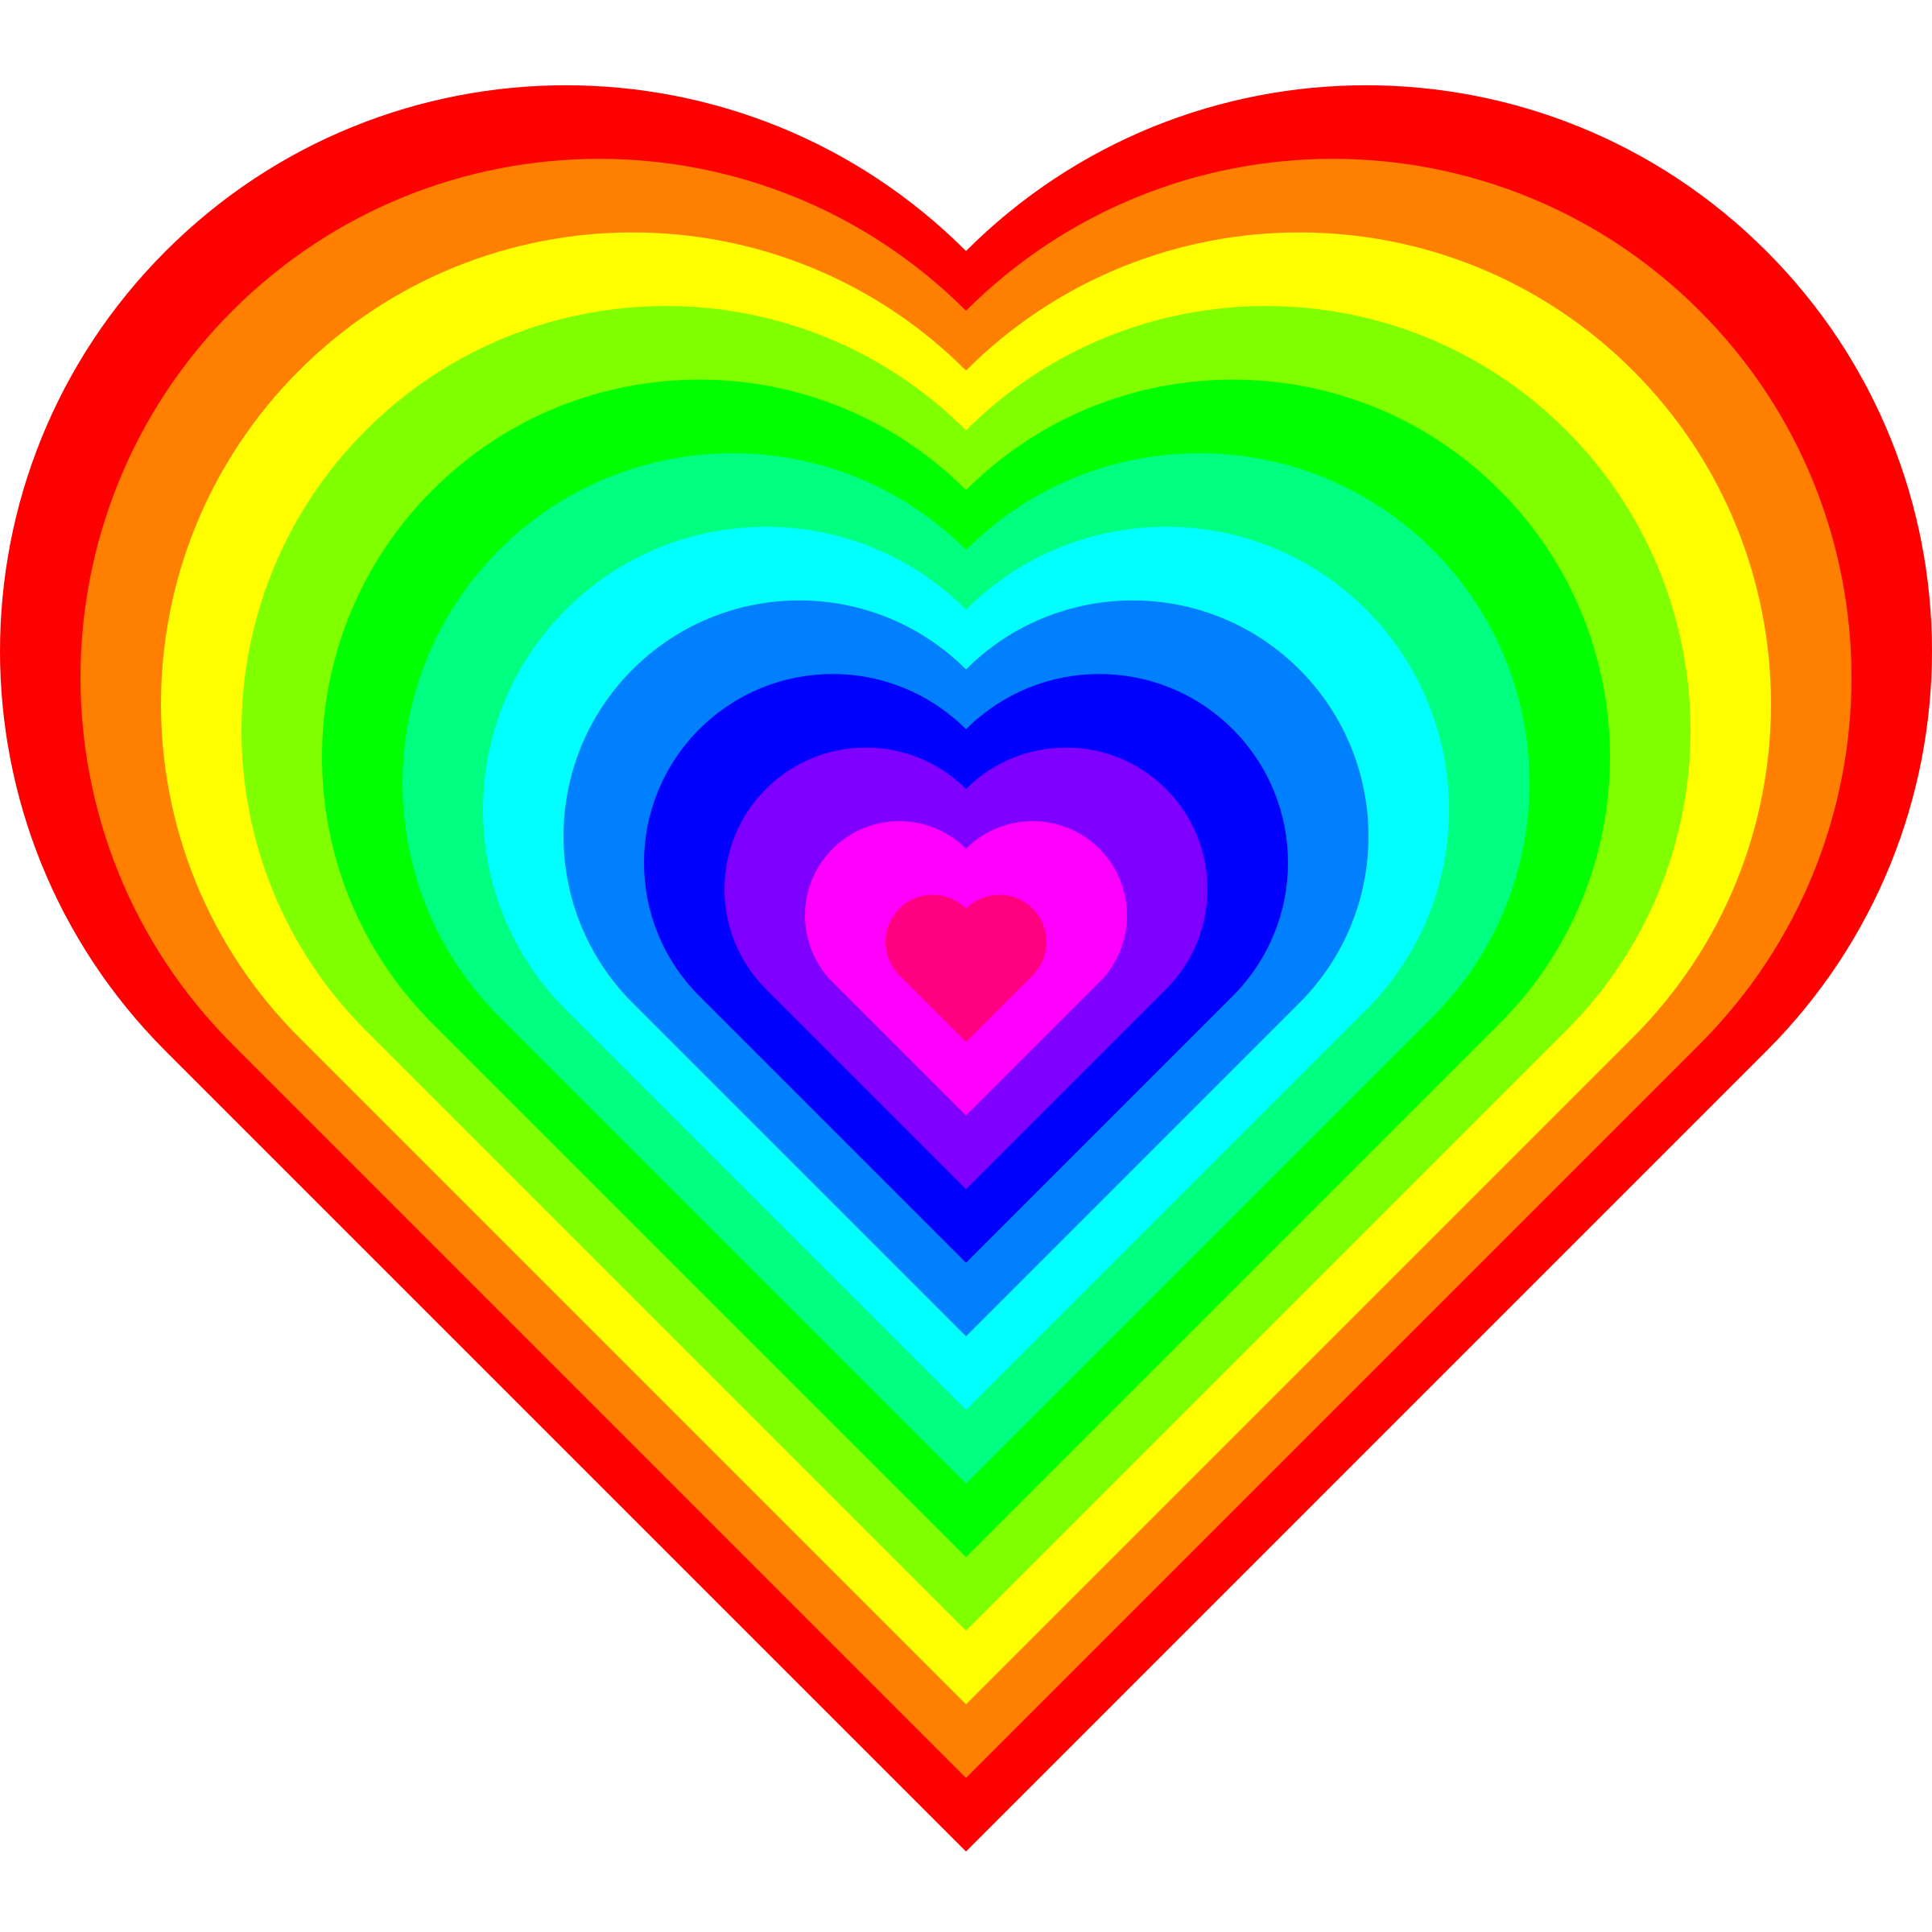 Geometric color heart big. Colors clipart animated